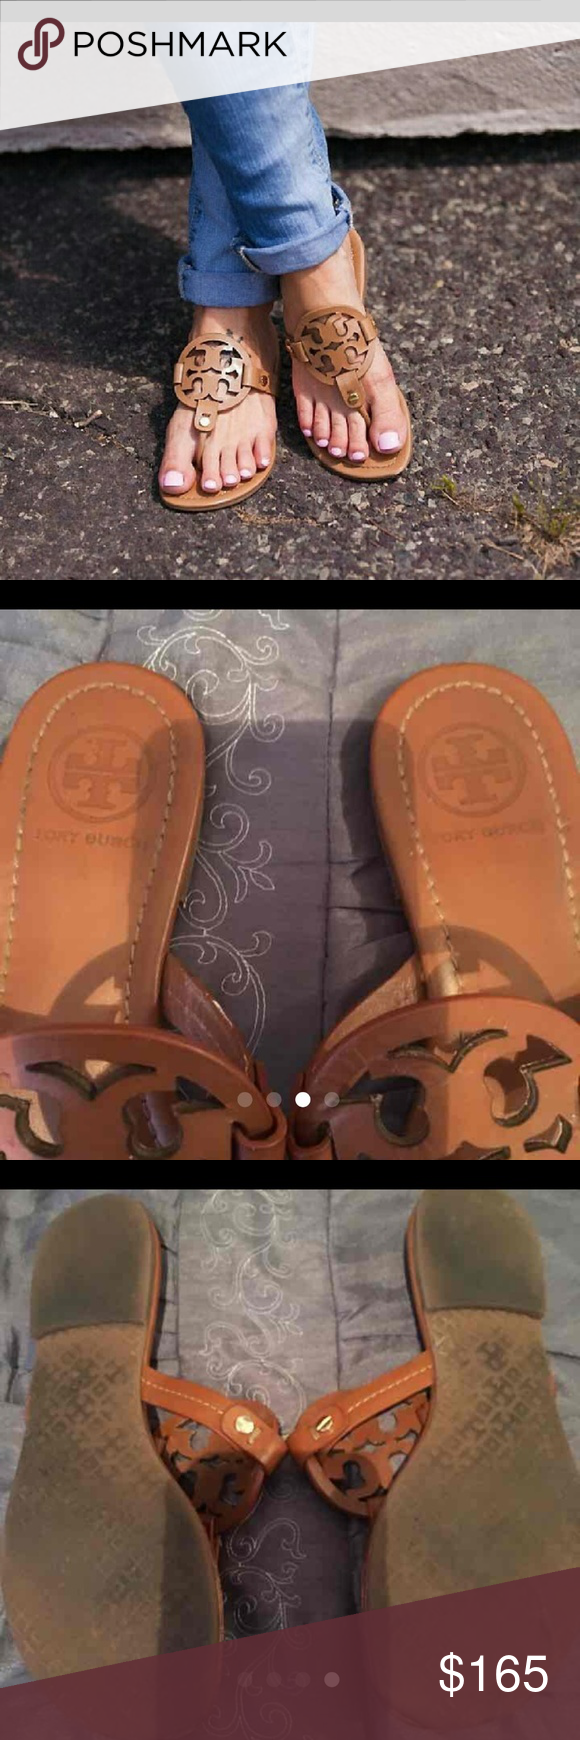 Authentic Tory Burch Miller sandals These are so cute with anything. Very in and in high demand. Especially this color. Condition is good with acception to tips have scuffing. Price is firm. Tory Burch Shoes Sandals